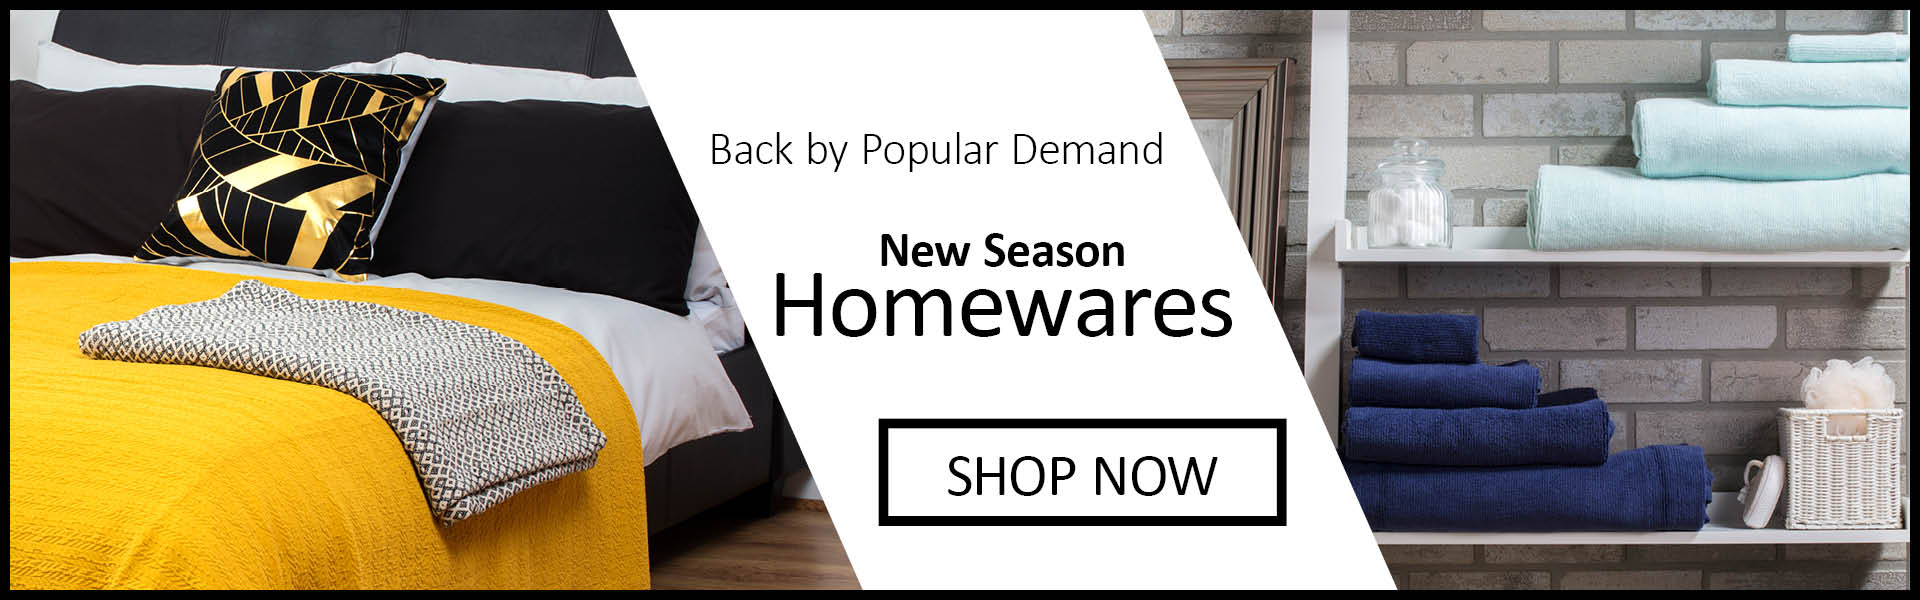 New Season Homewares